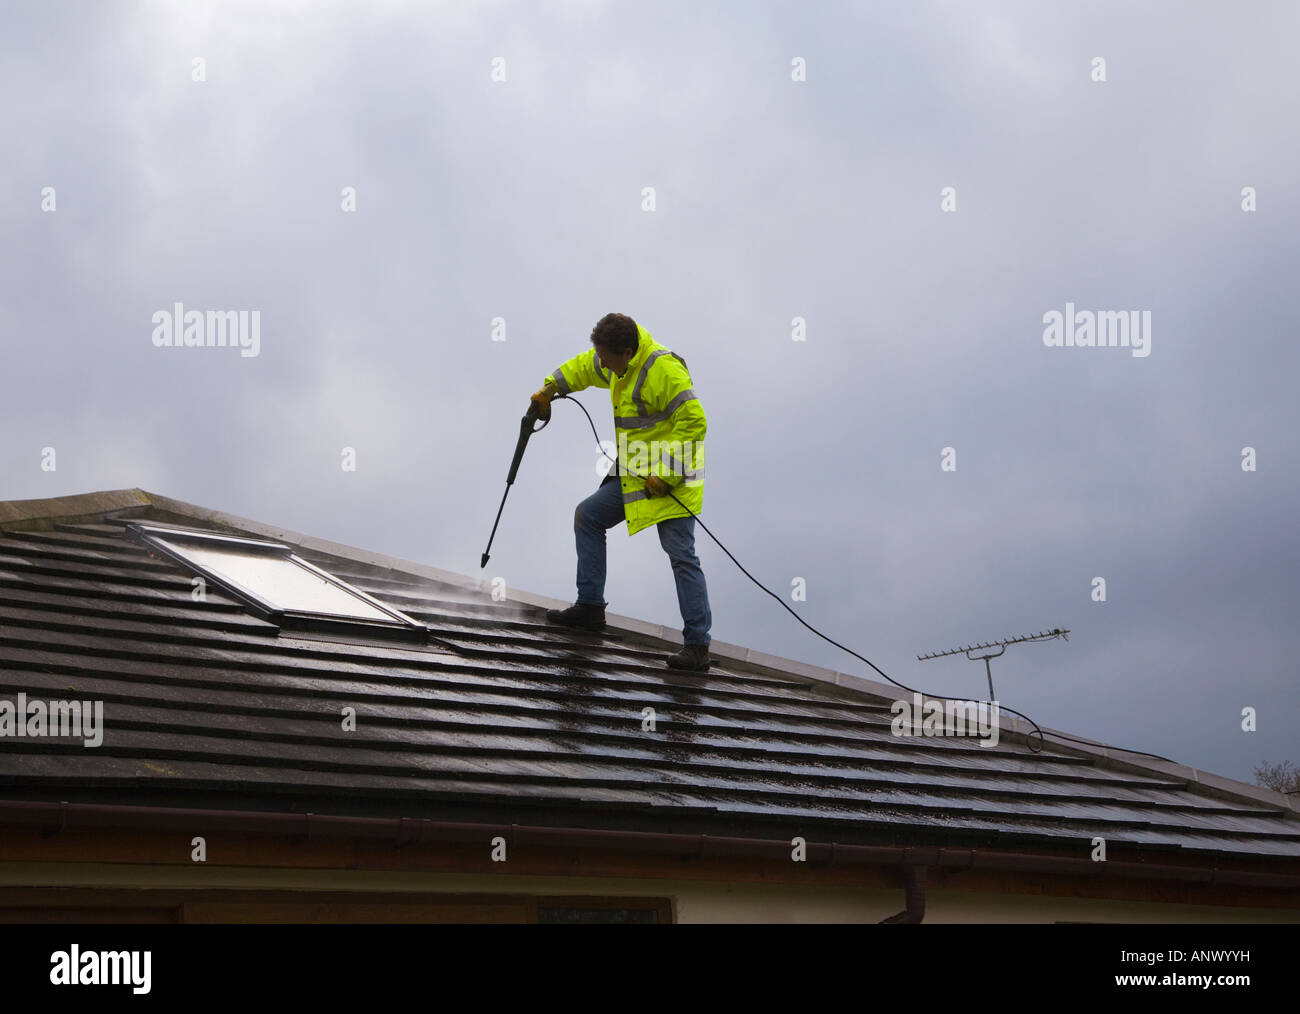 Man cleaning the roof of a house using a high pressure water jetwash stock photo royalty free - Using water pressure roof cleaning ...